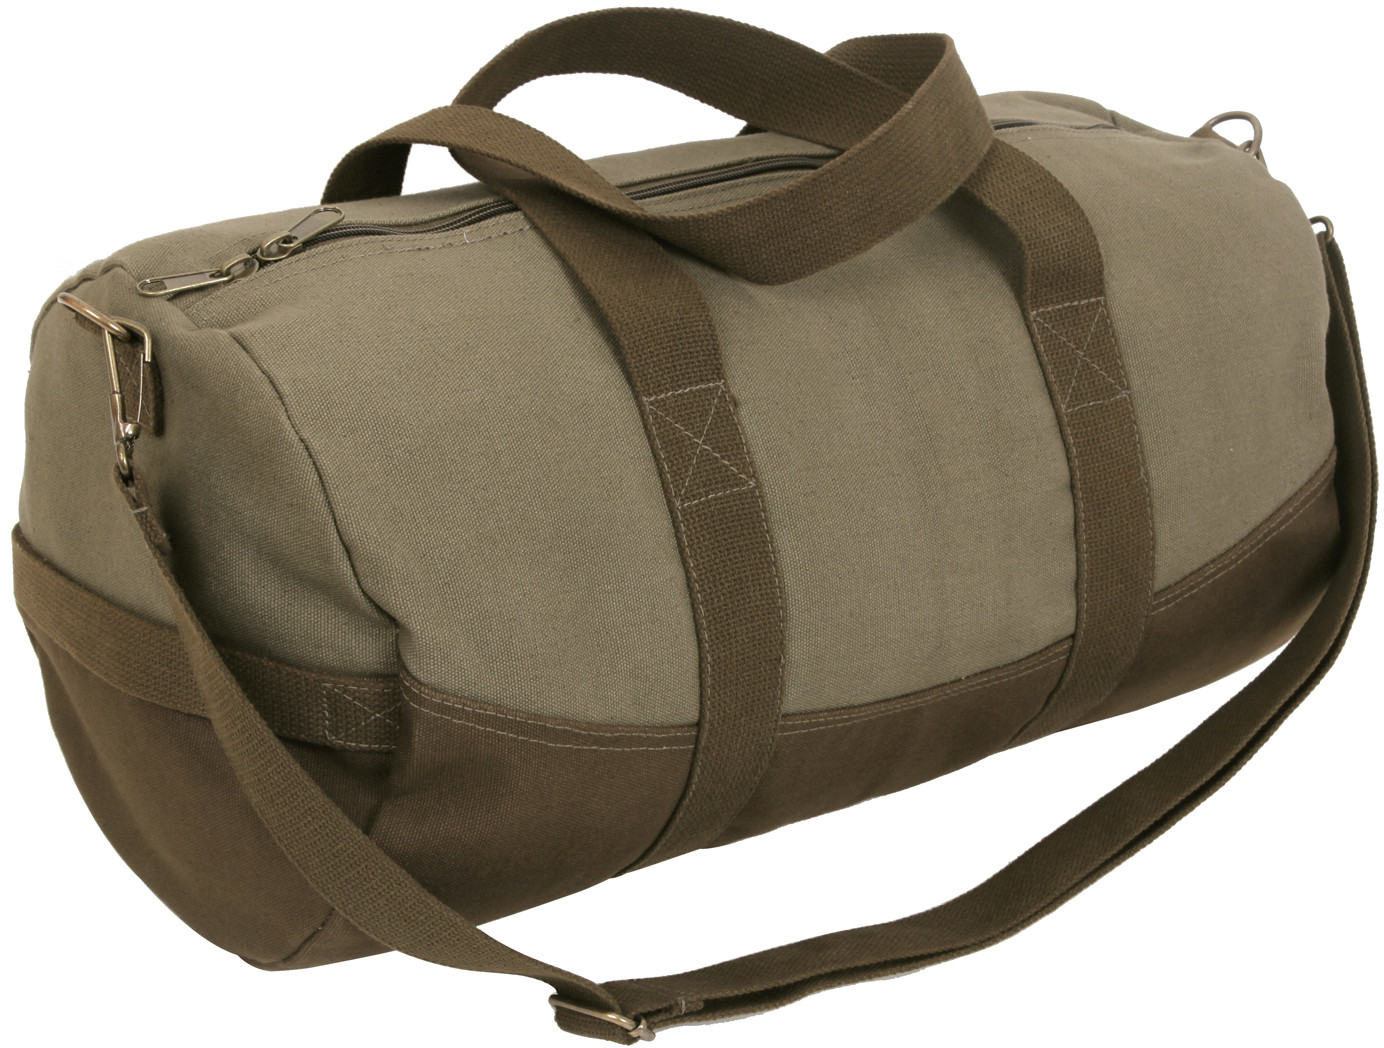 Two-Tone Canvas Duffle Bag With Brown Bottom e7b15143c97